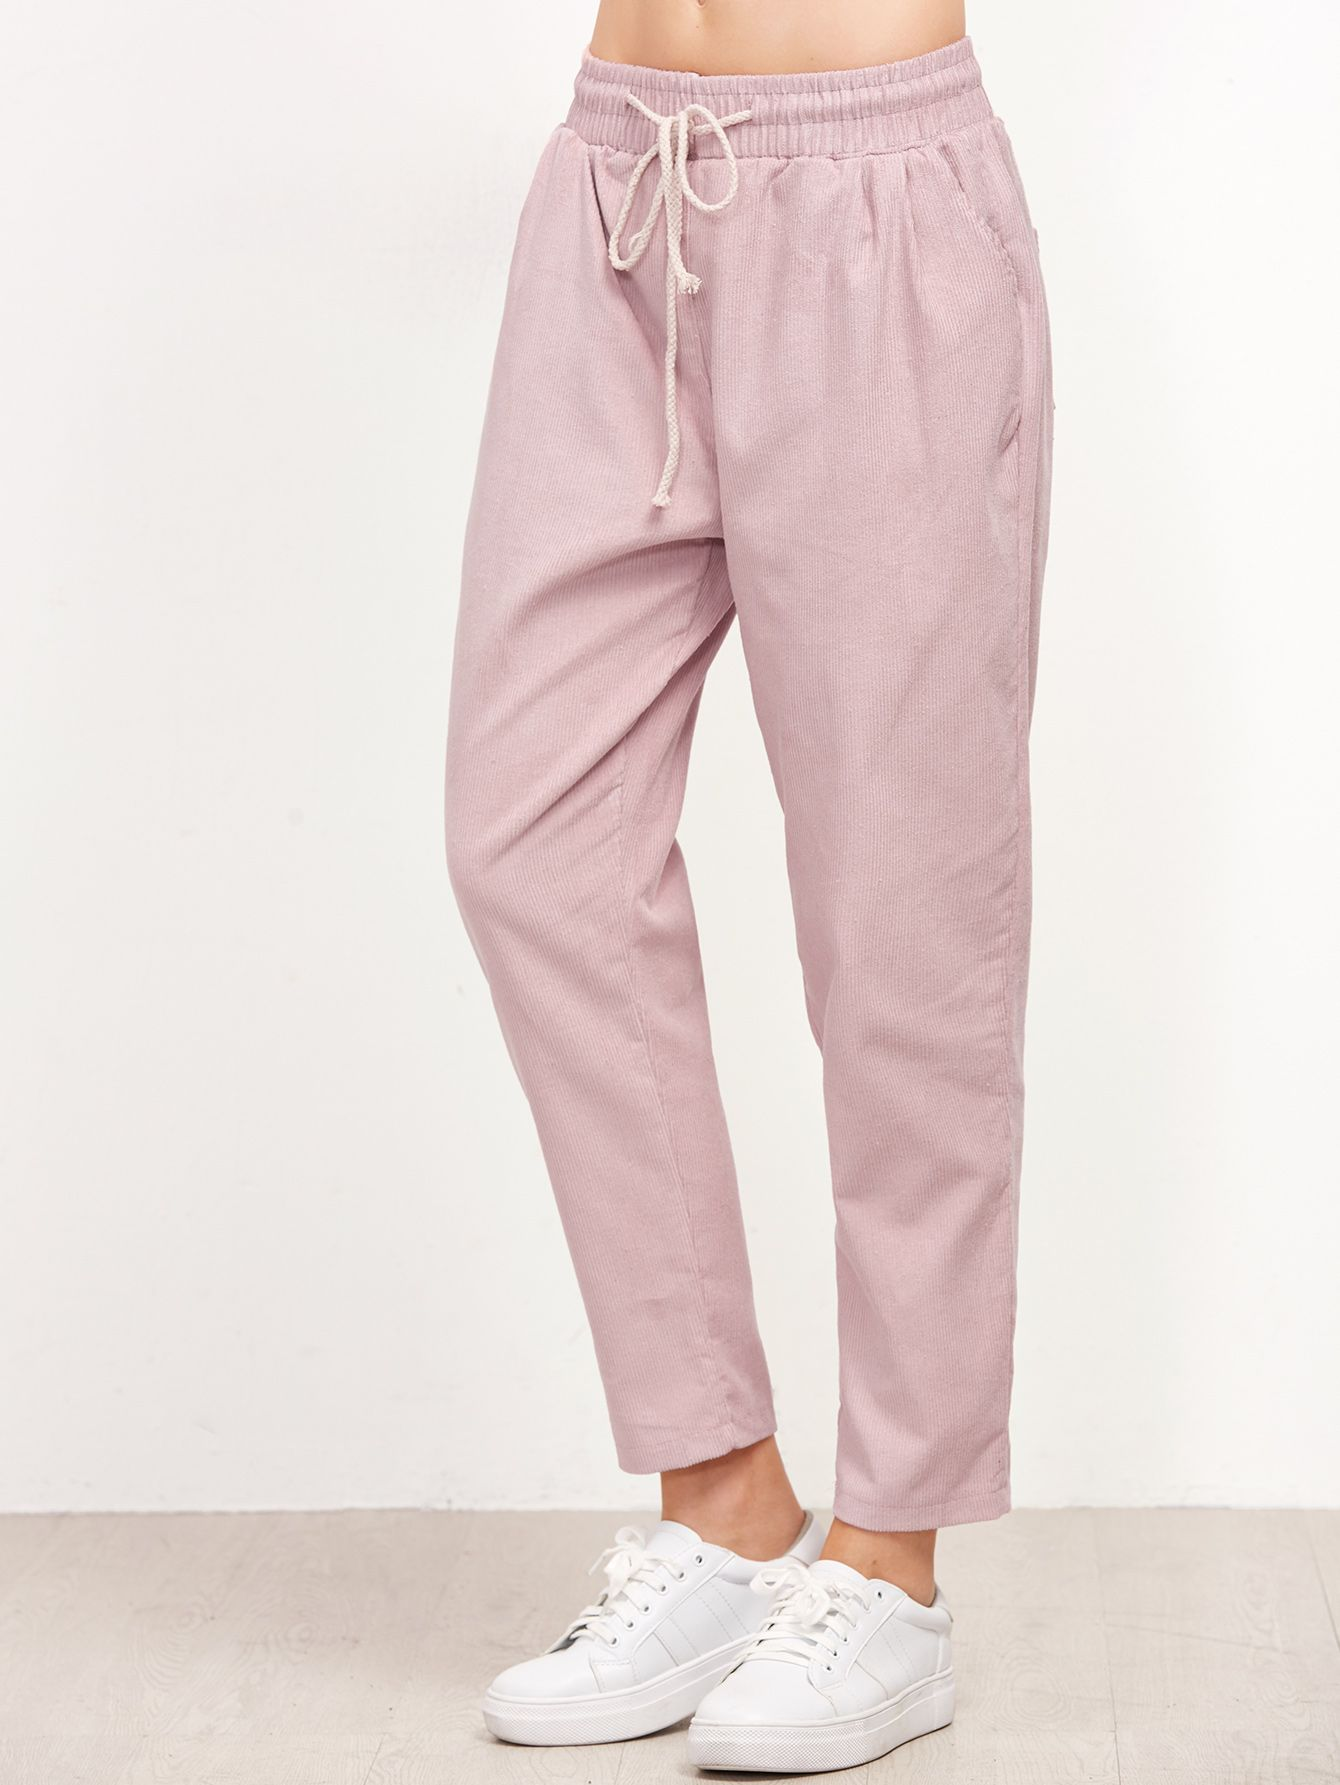 790db82ebb Shop Pink Drawstring Waist Tapered Pants online. SheIn offers Pink  Drawstring Waist Tapered Pants & more to fit your fashionable needs.